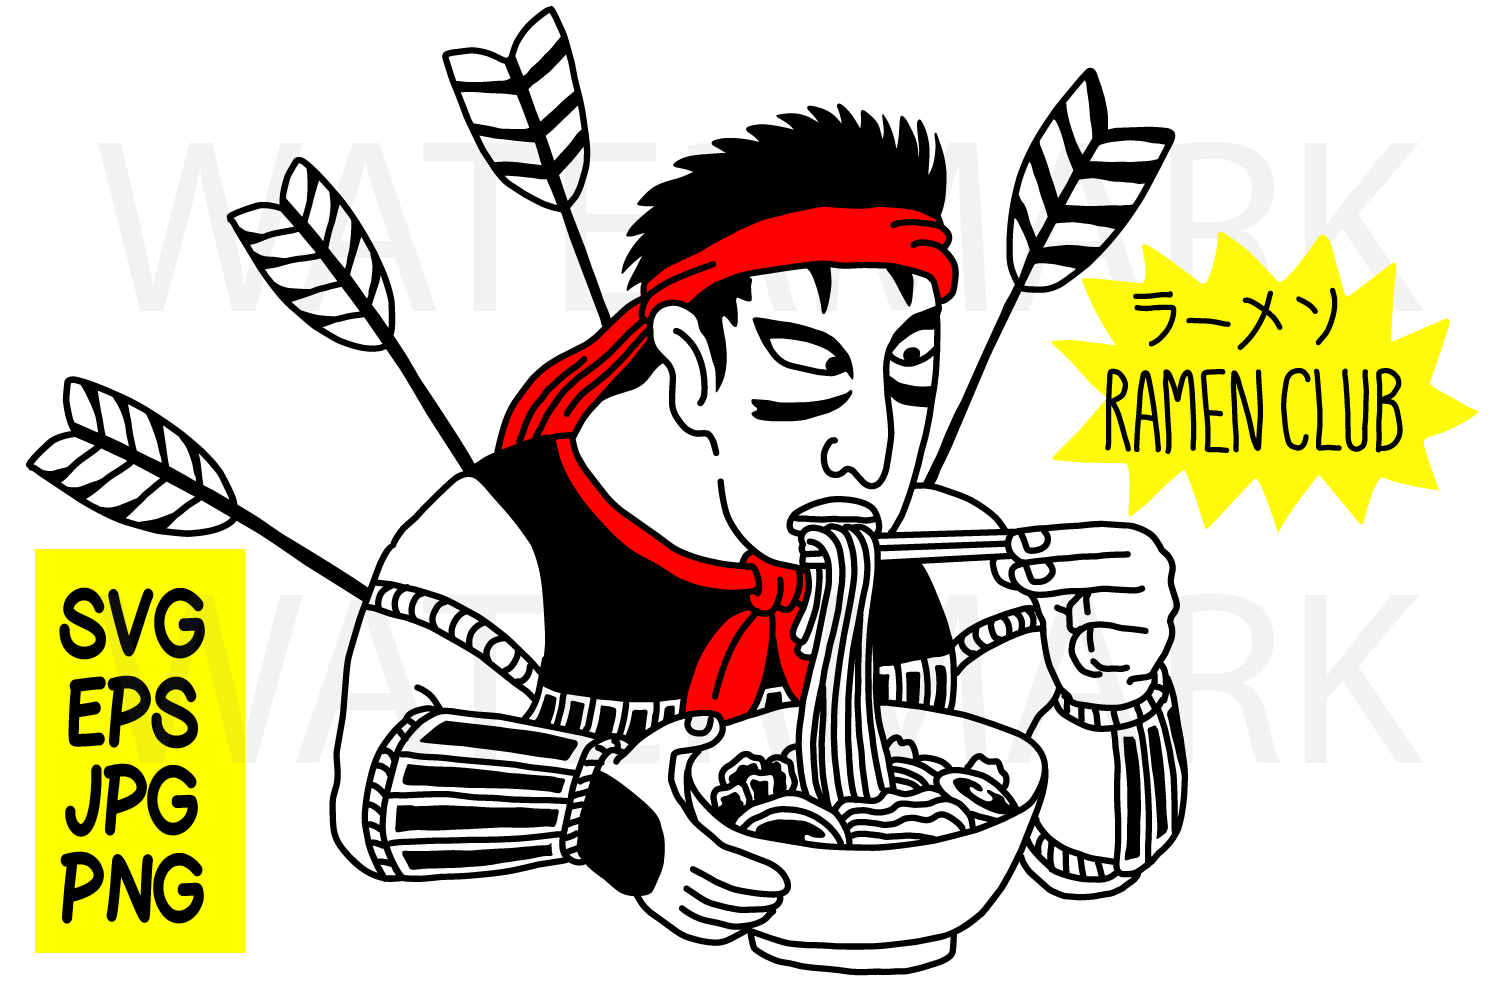 Samurai Ramen Club -- with outline - SVG-EPS-JPG-PNG example image 1